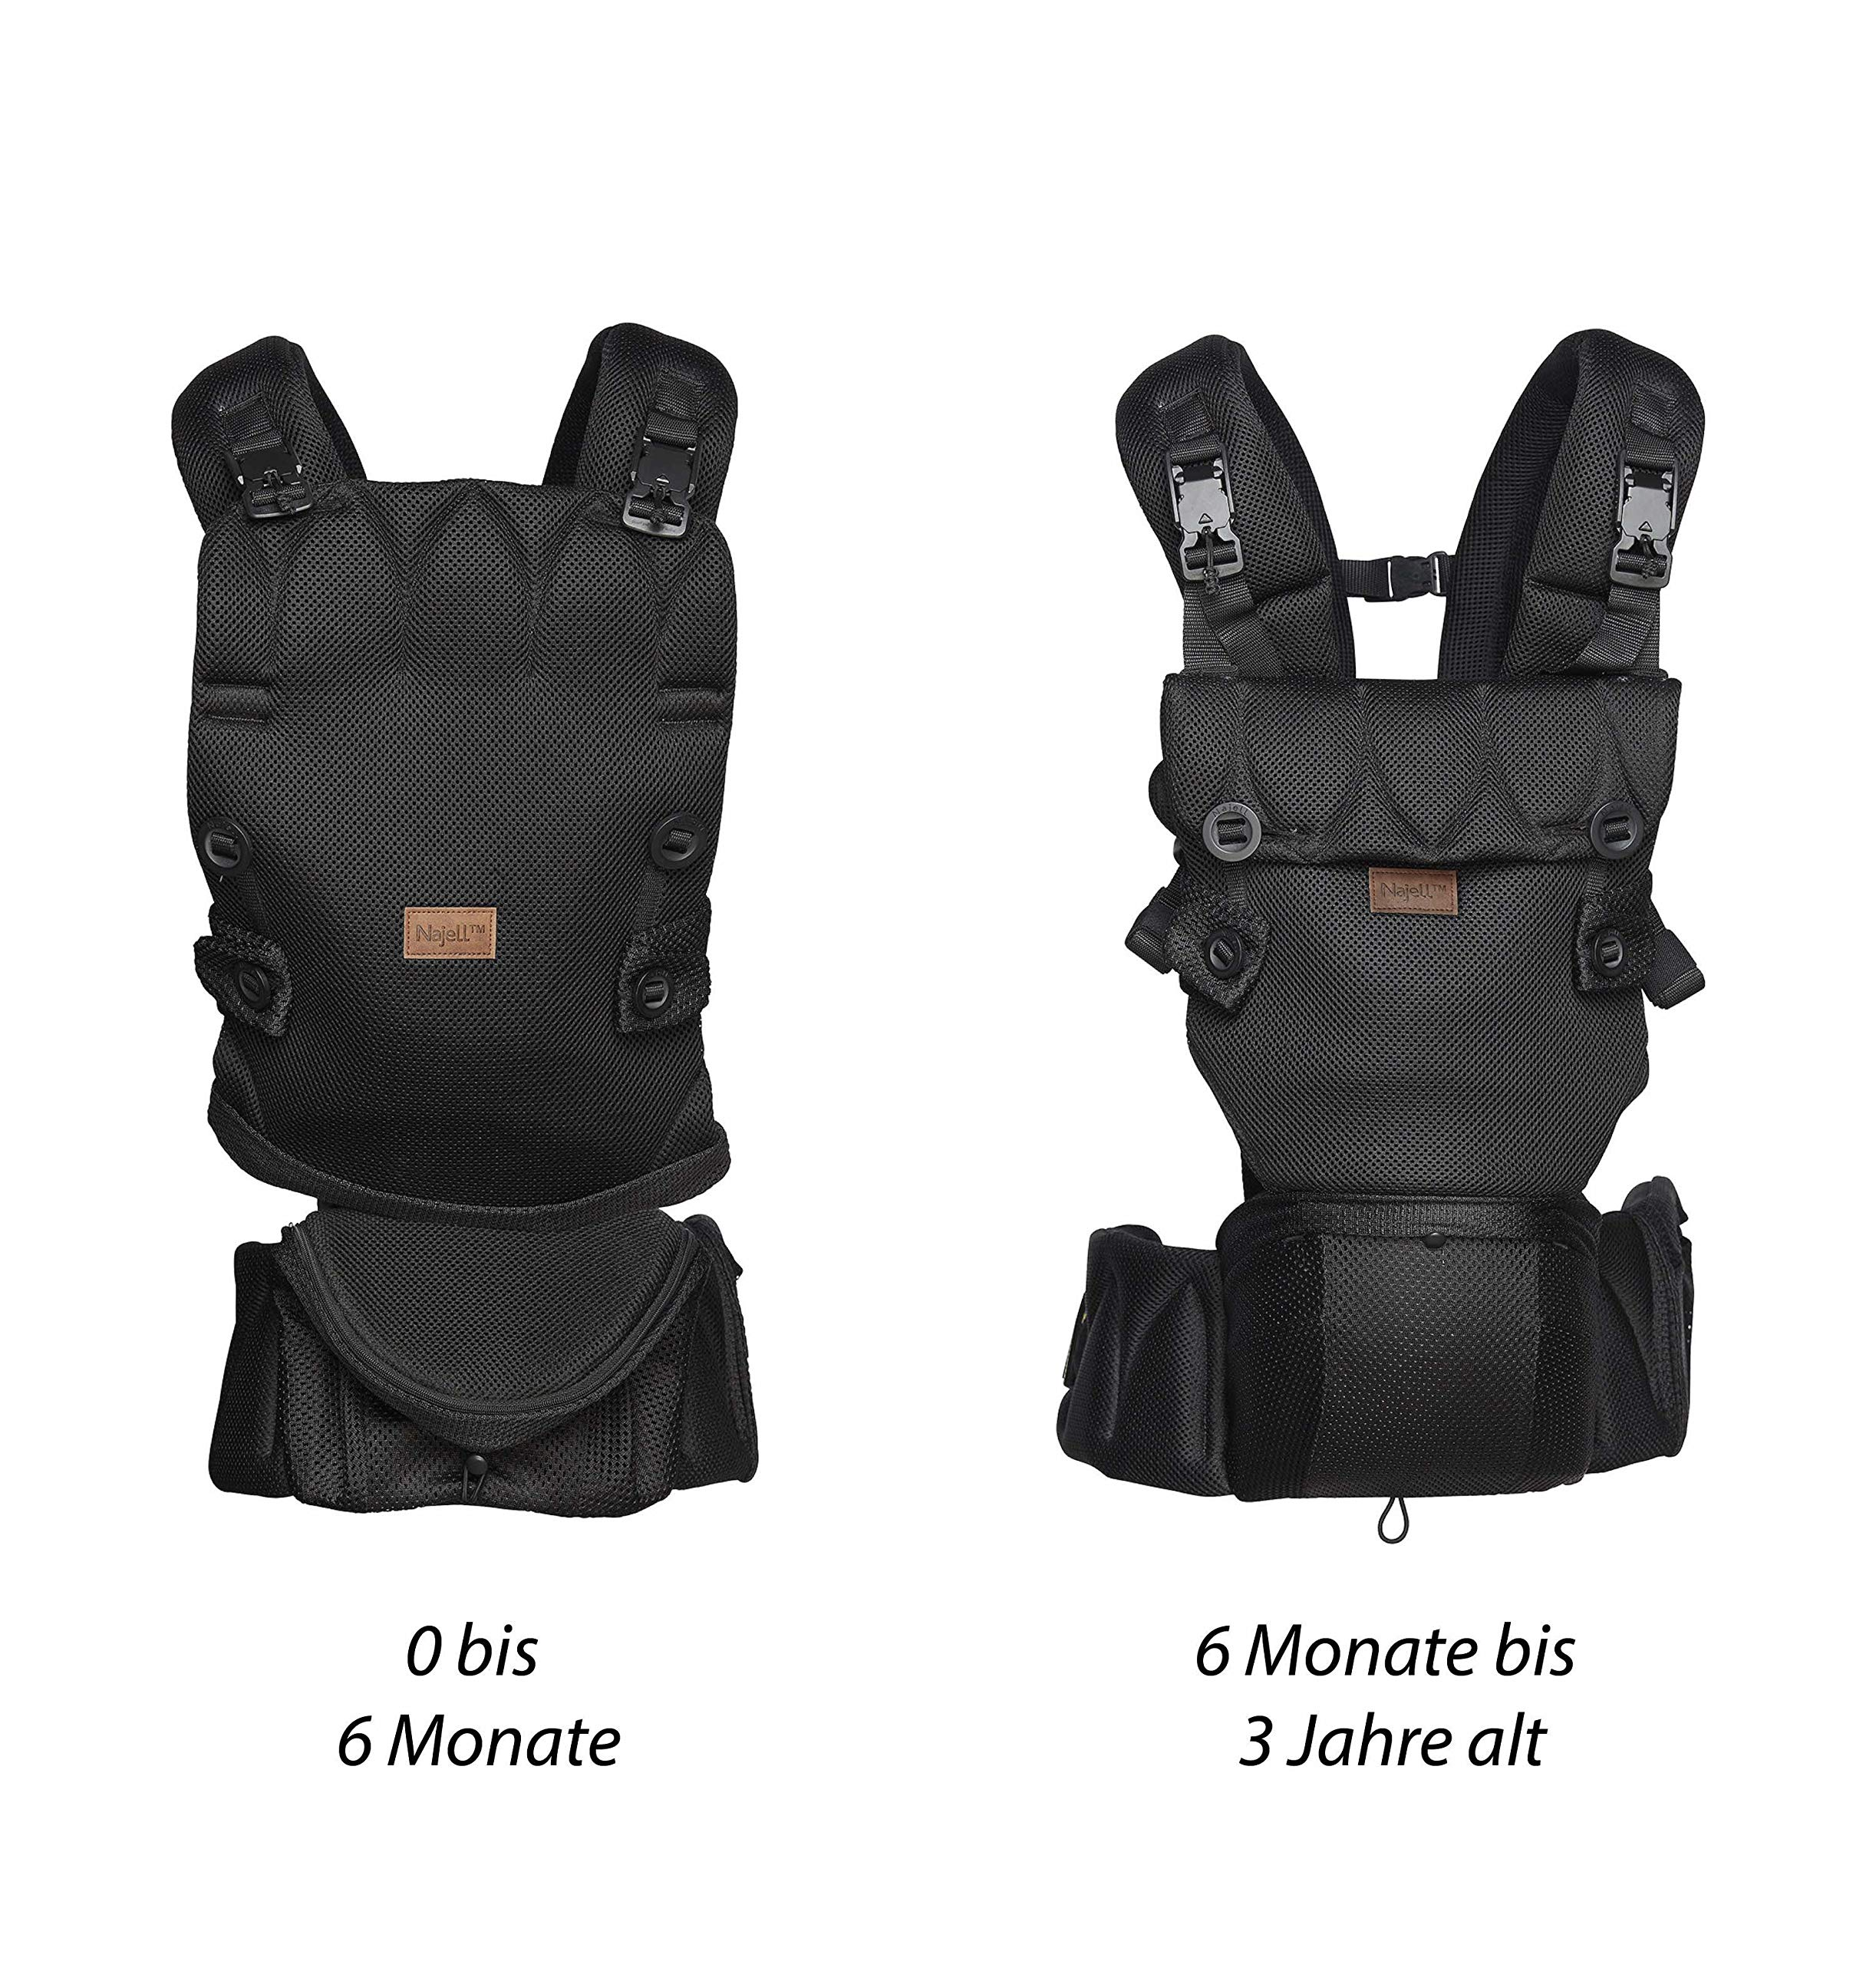 Najell Omni Active Mesh Baby Carrier with Hip Seat, Brilliant Black Béaba New-born ergonomic position and hips seat from 6 months. Market leading weight distribution with hip seat, recommended by the international hip dysplasia institute as a hip-healthy baby carrier Weight: 3, 5 to 15 kg and age: new-born to 3 years. 9